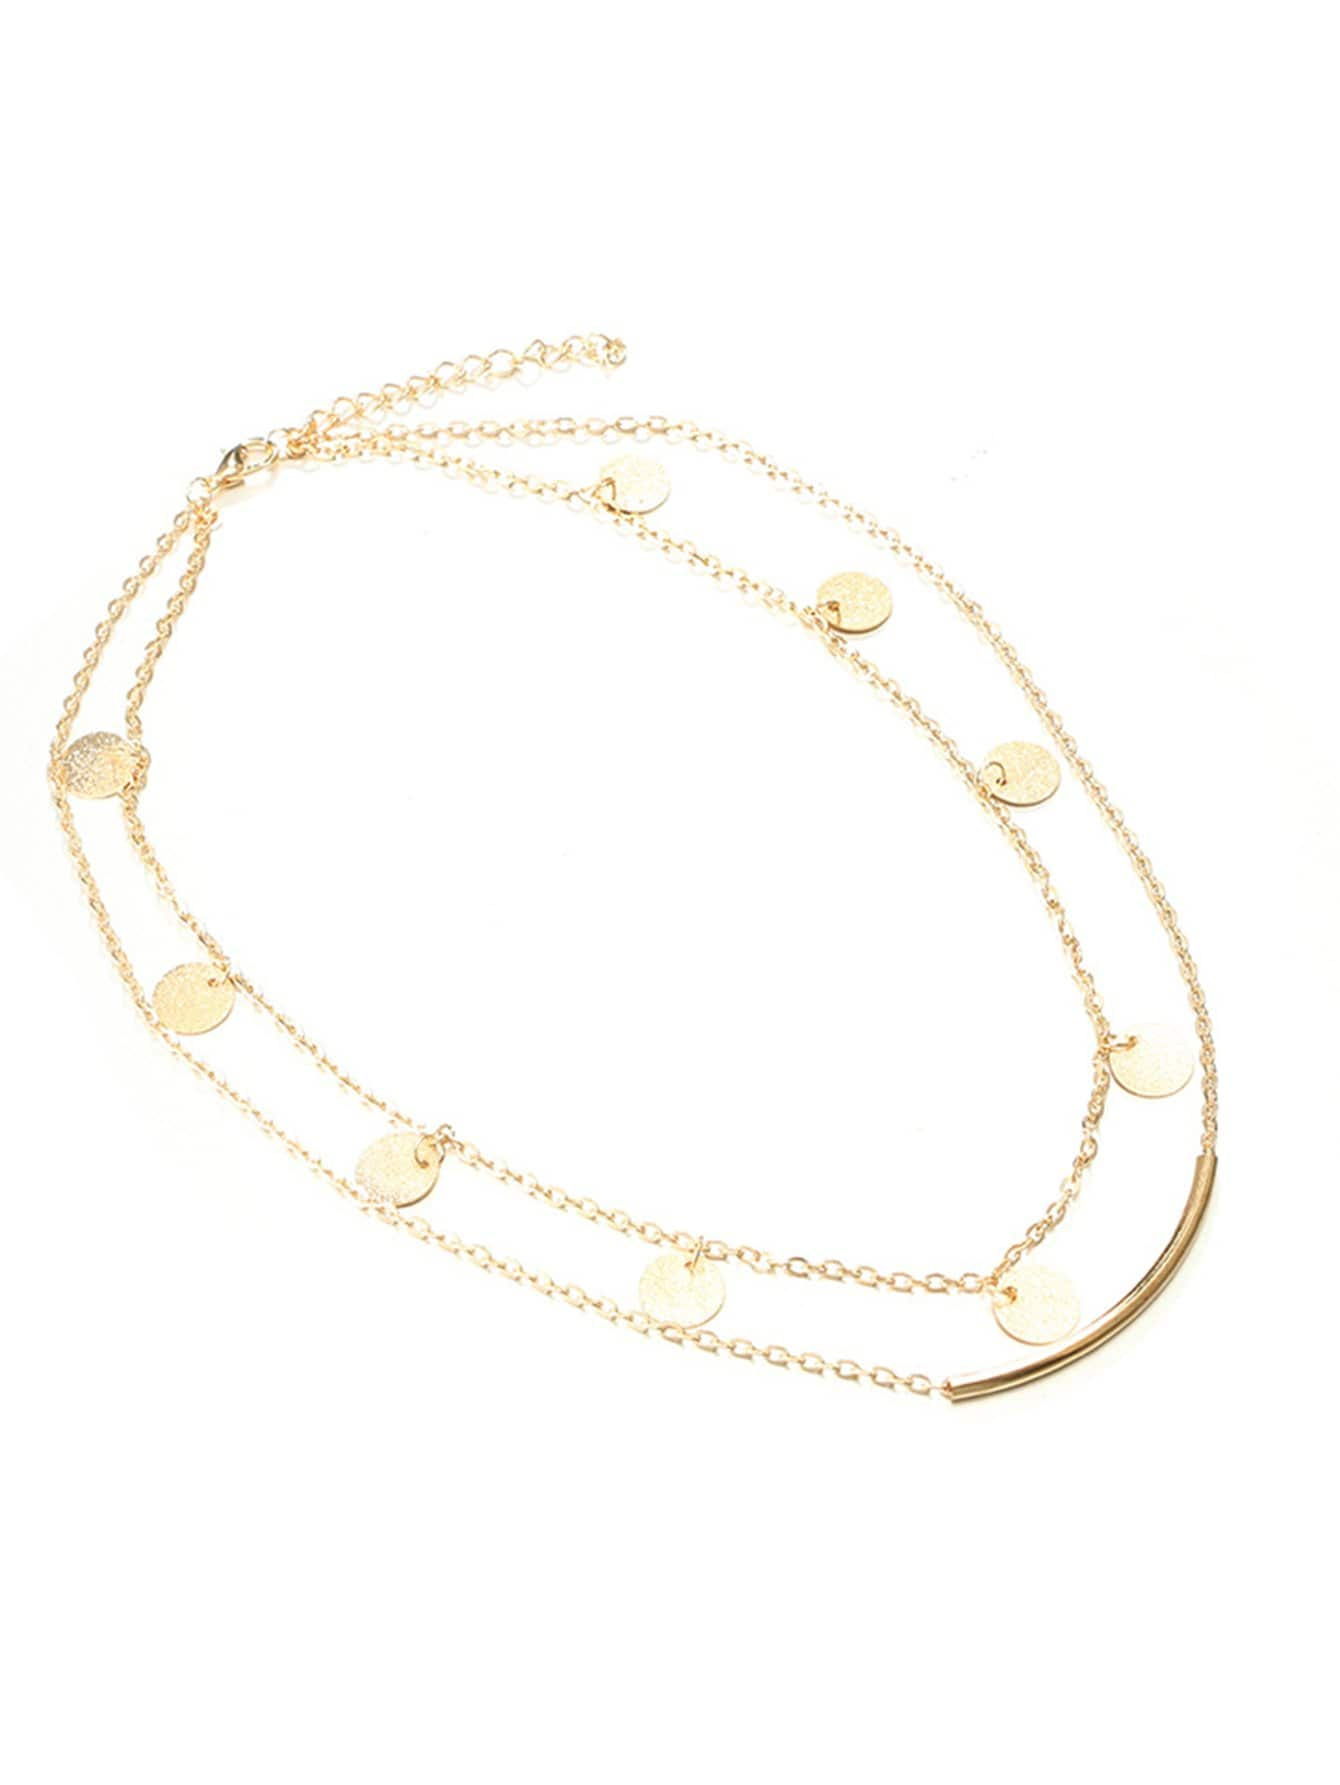 Bar & Round Detail Layered Chain Necklace